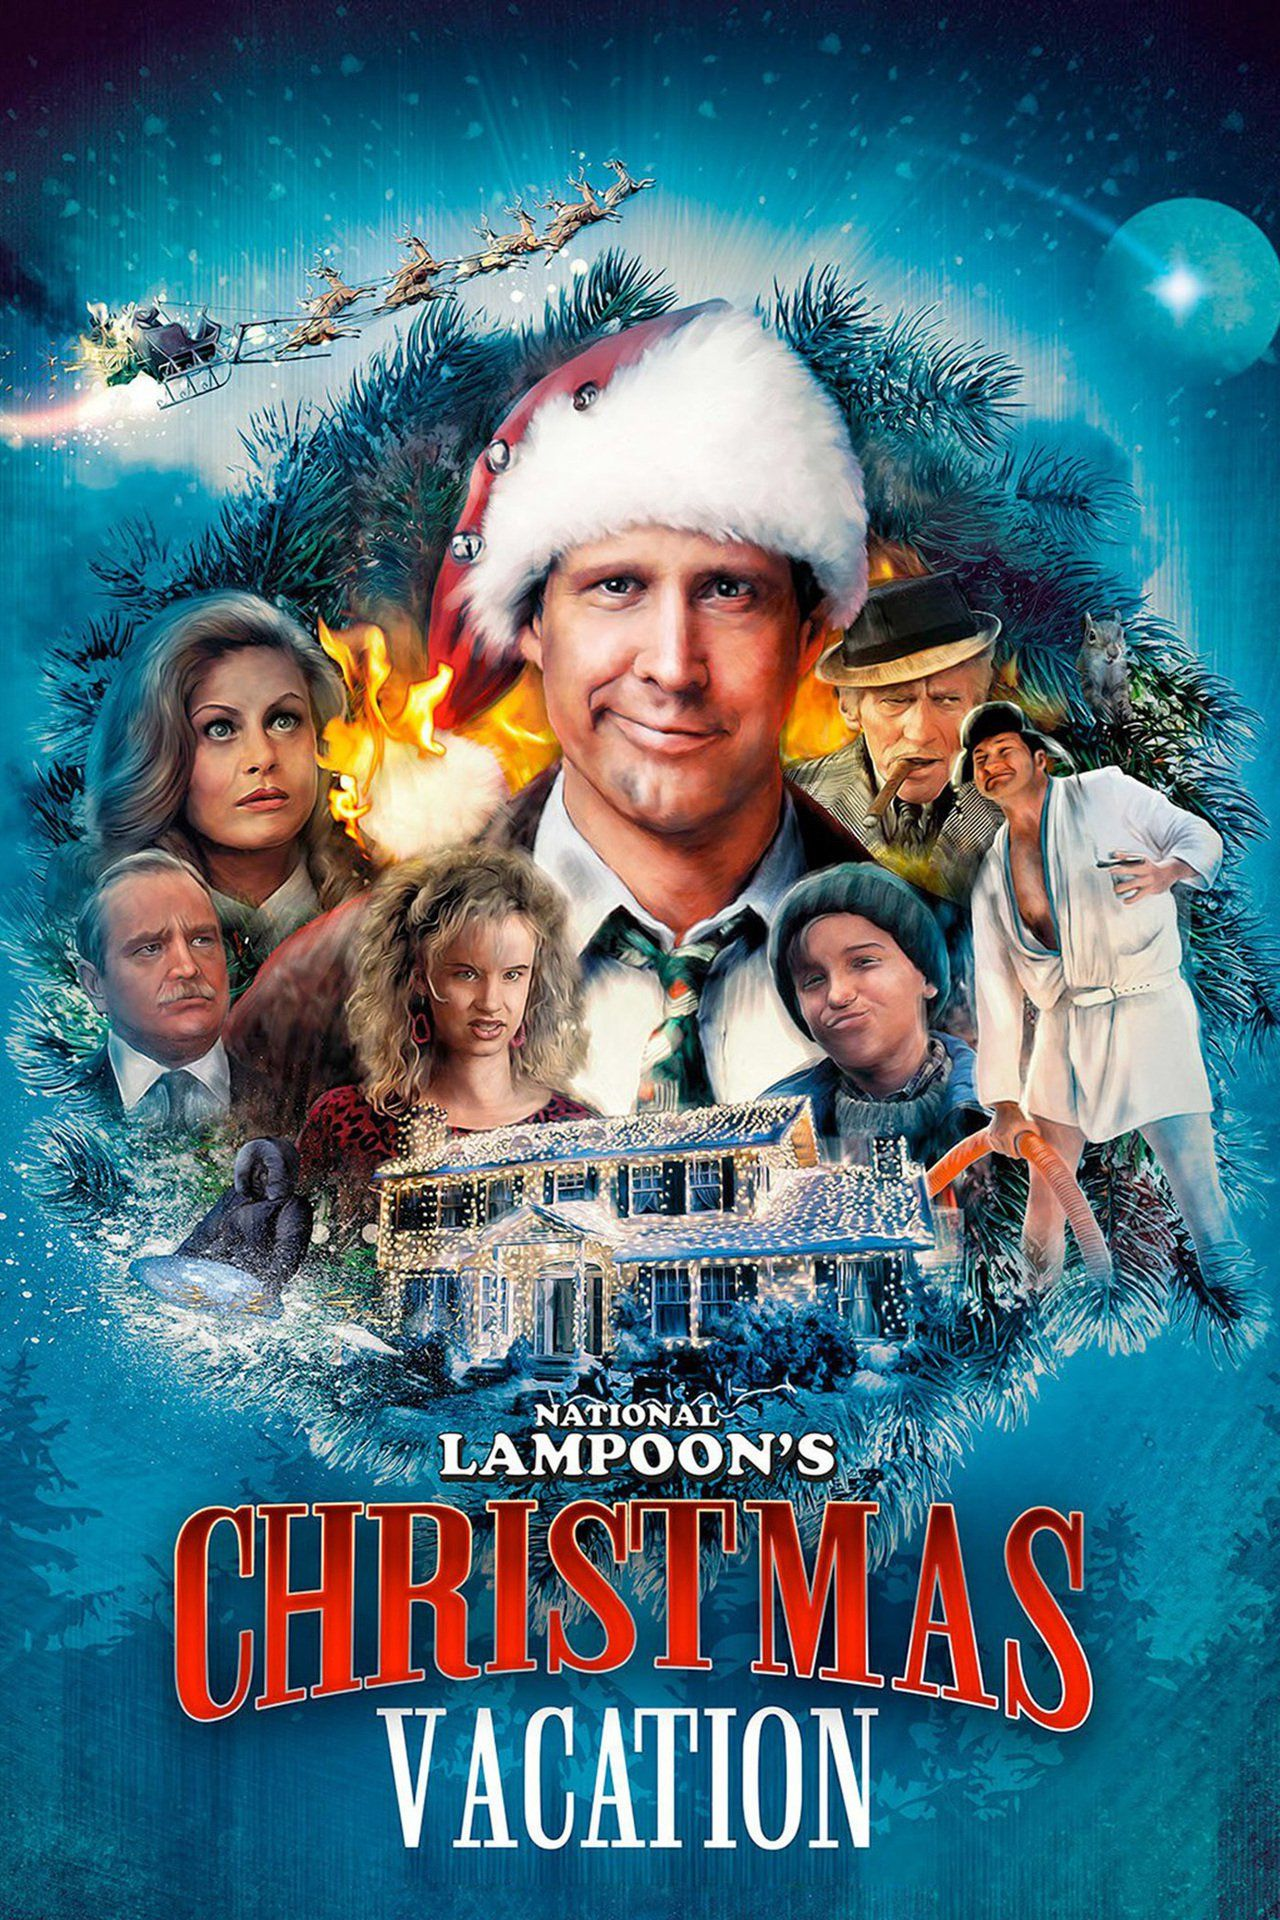 Christmas Vacation Dvdrip: Http://goodwatch.co/item/National-Lampoon's-Christmas